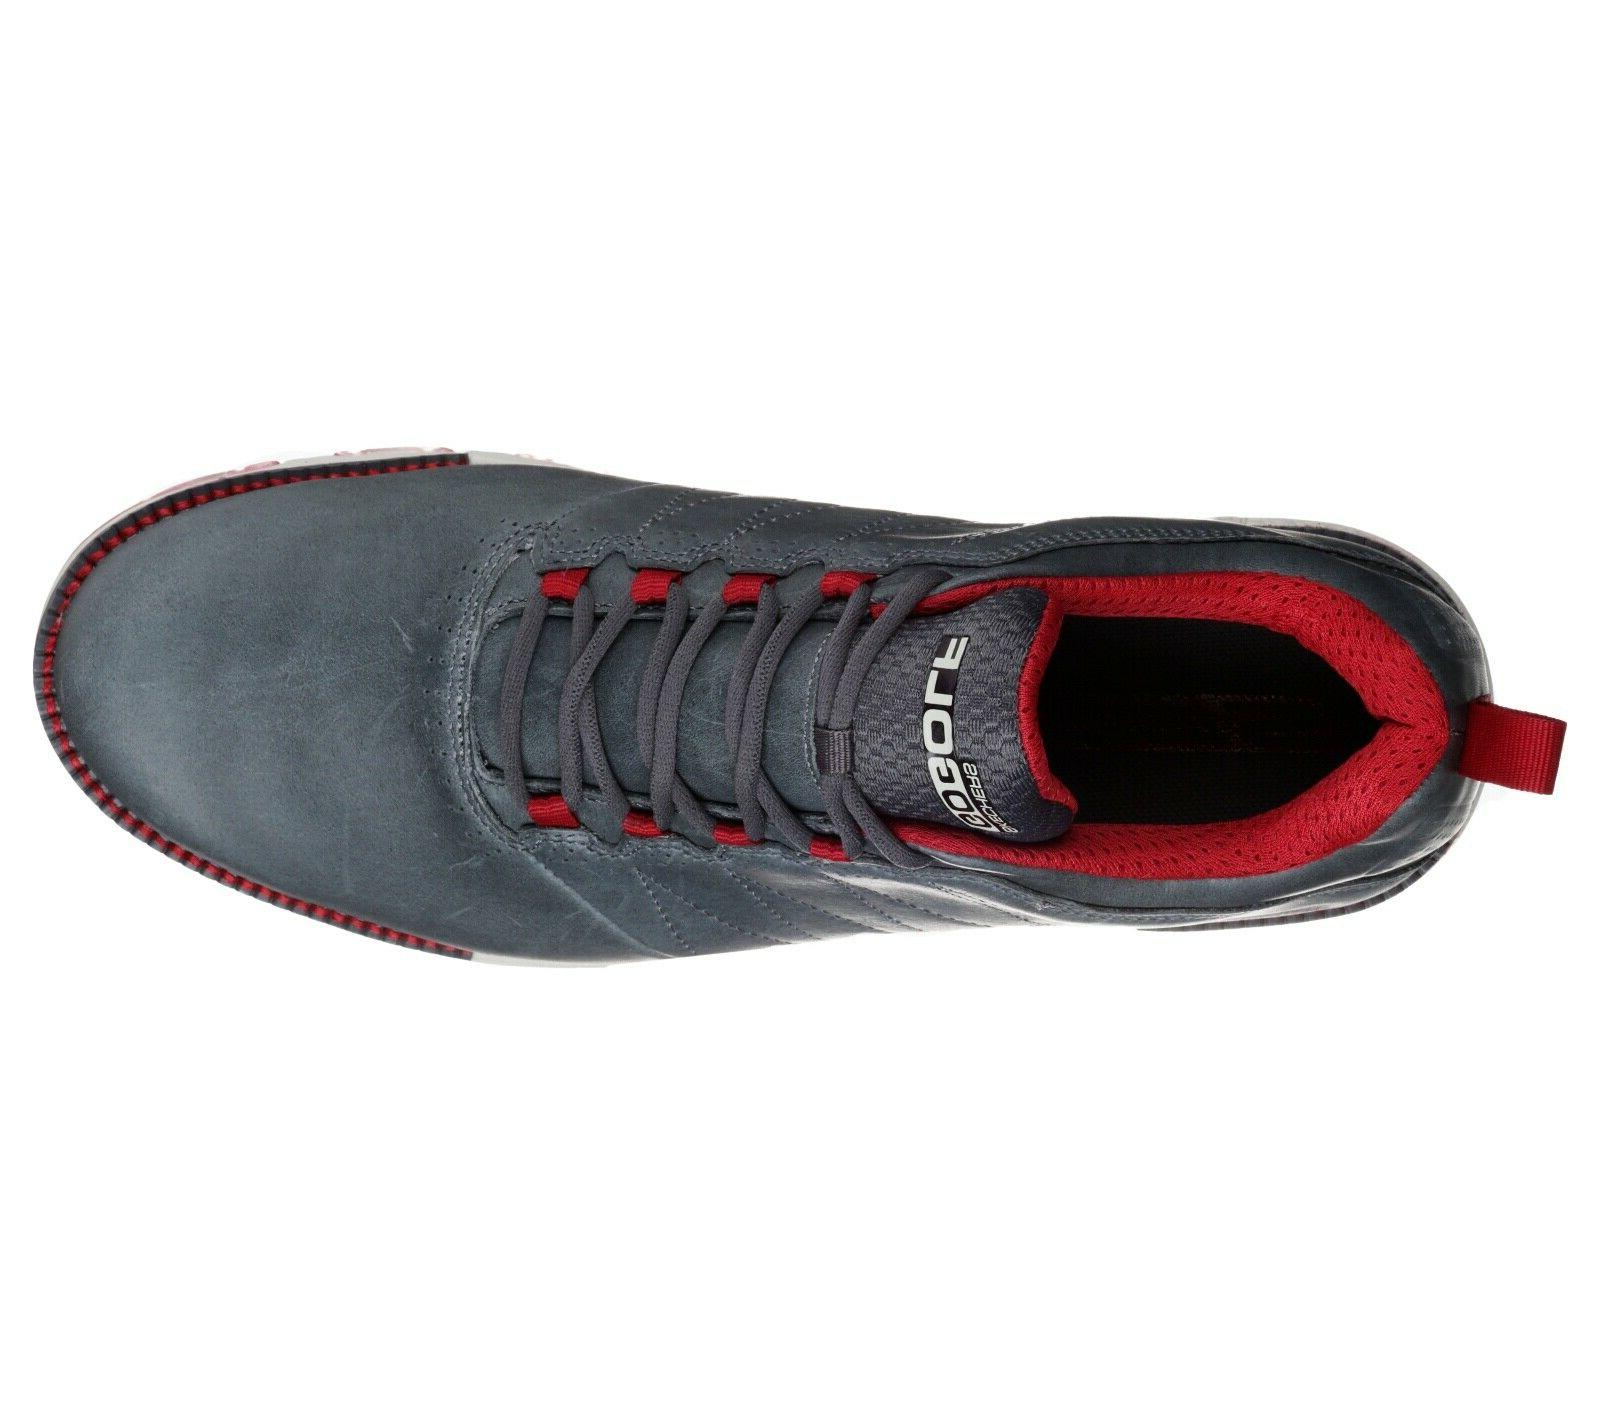 Skechers V.3 CCRD Golf Shoes-Style